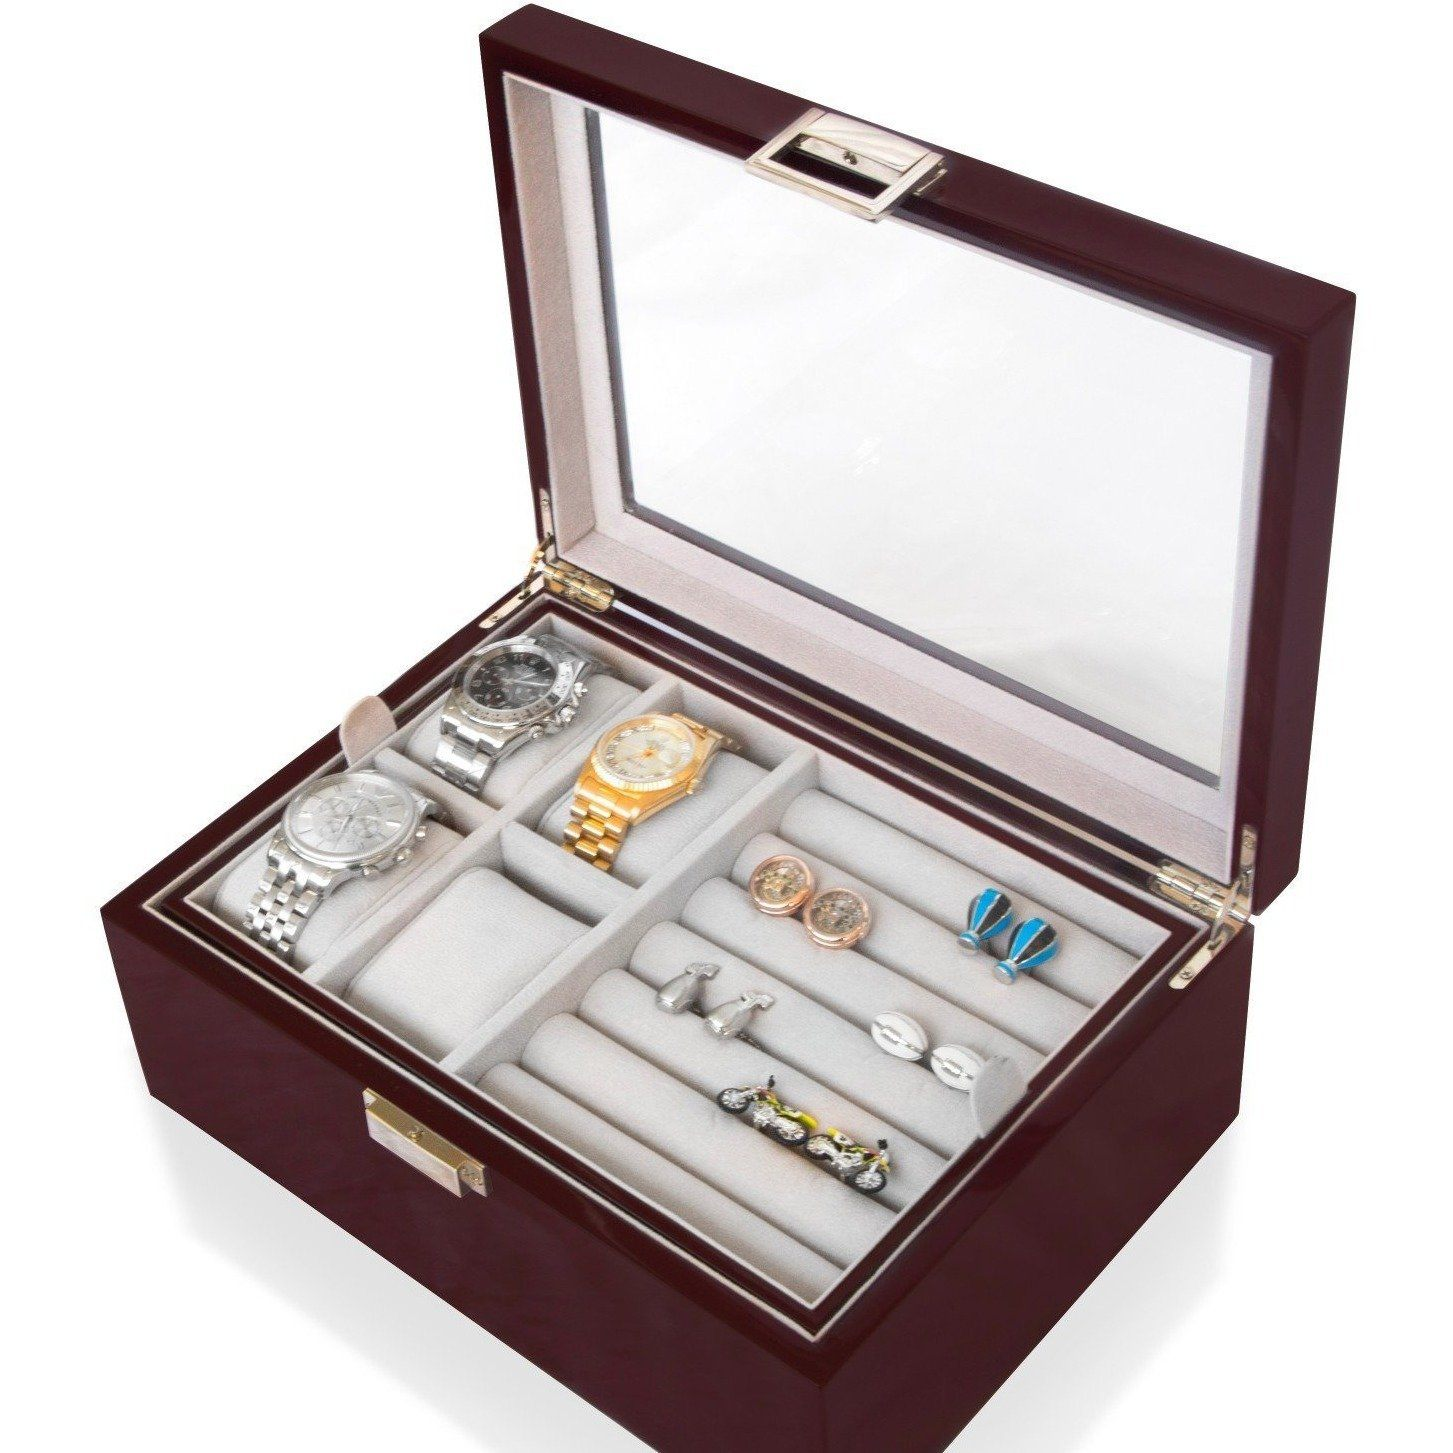 50 Pair Cufflink and Watch Box Double Decker Mahogany , Storage Boxes Clinks Australia , CB3070 , Mahogany Double Decker Cufflink & Watch Box , Cuffed , Clinks